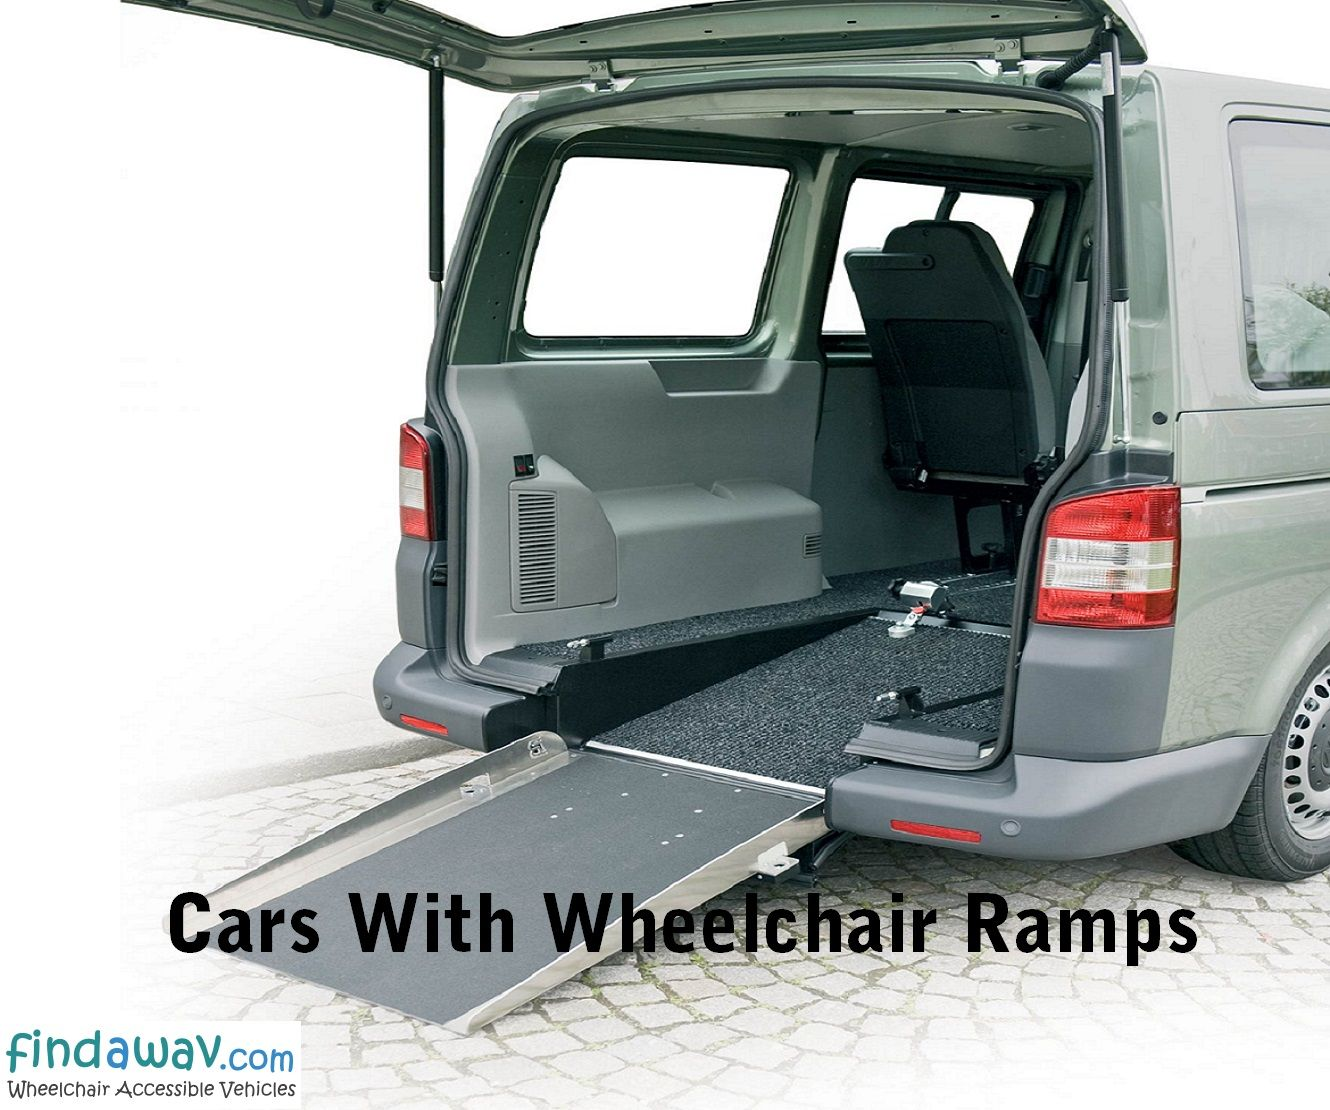 Cars With Wheelchair Ramps Cars Suitable For Wheelchairs